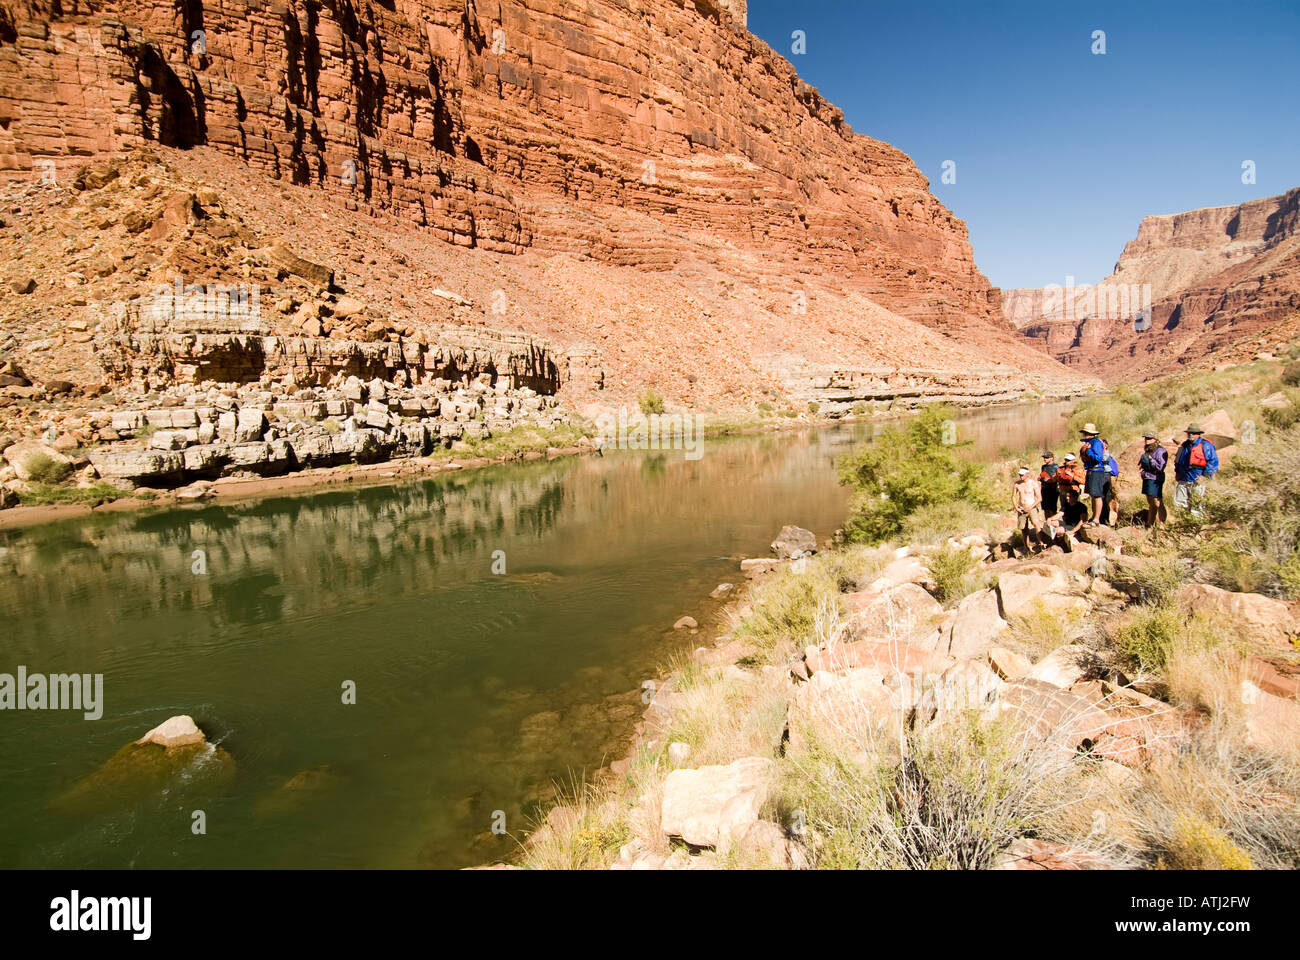 Scouting one of the Roaring Twenties while rafting the Colorado River in the Grand Canyon National Park Arizona - Stock Image